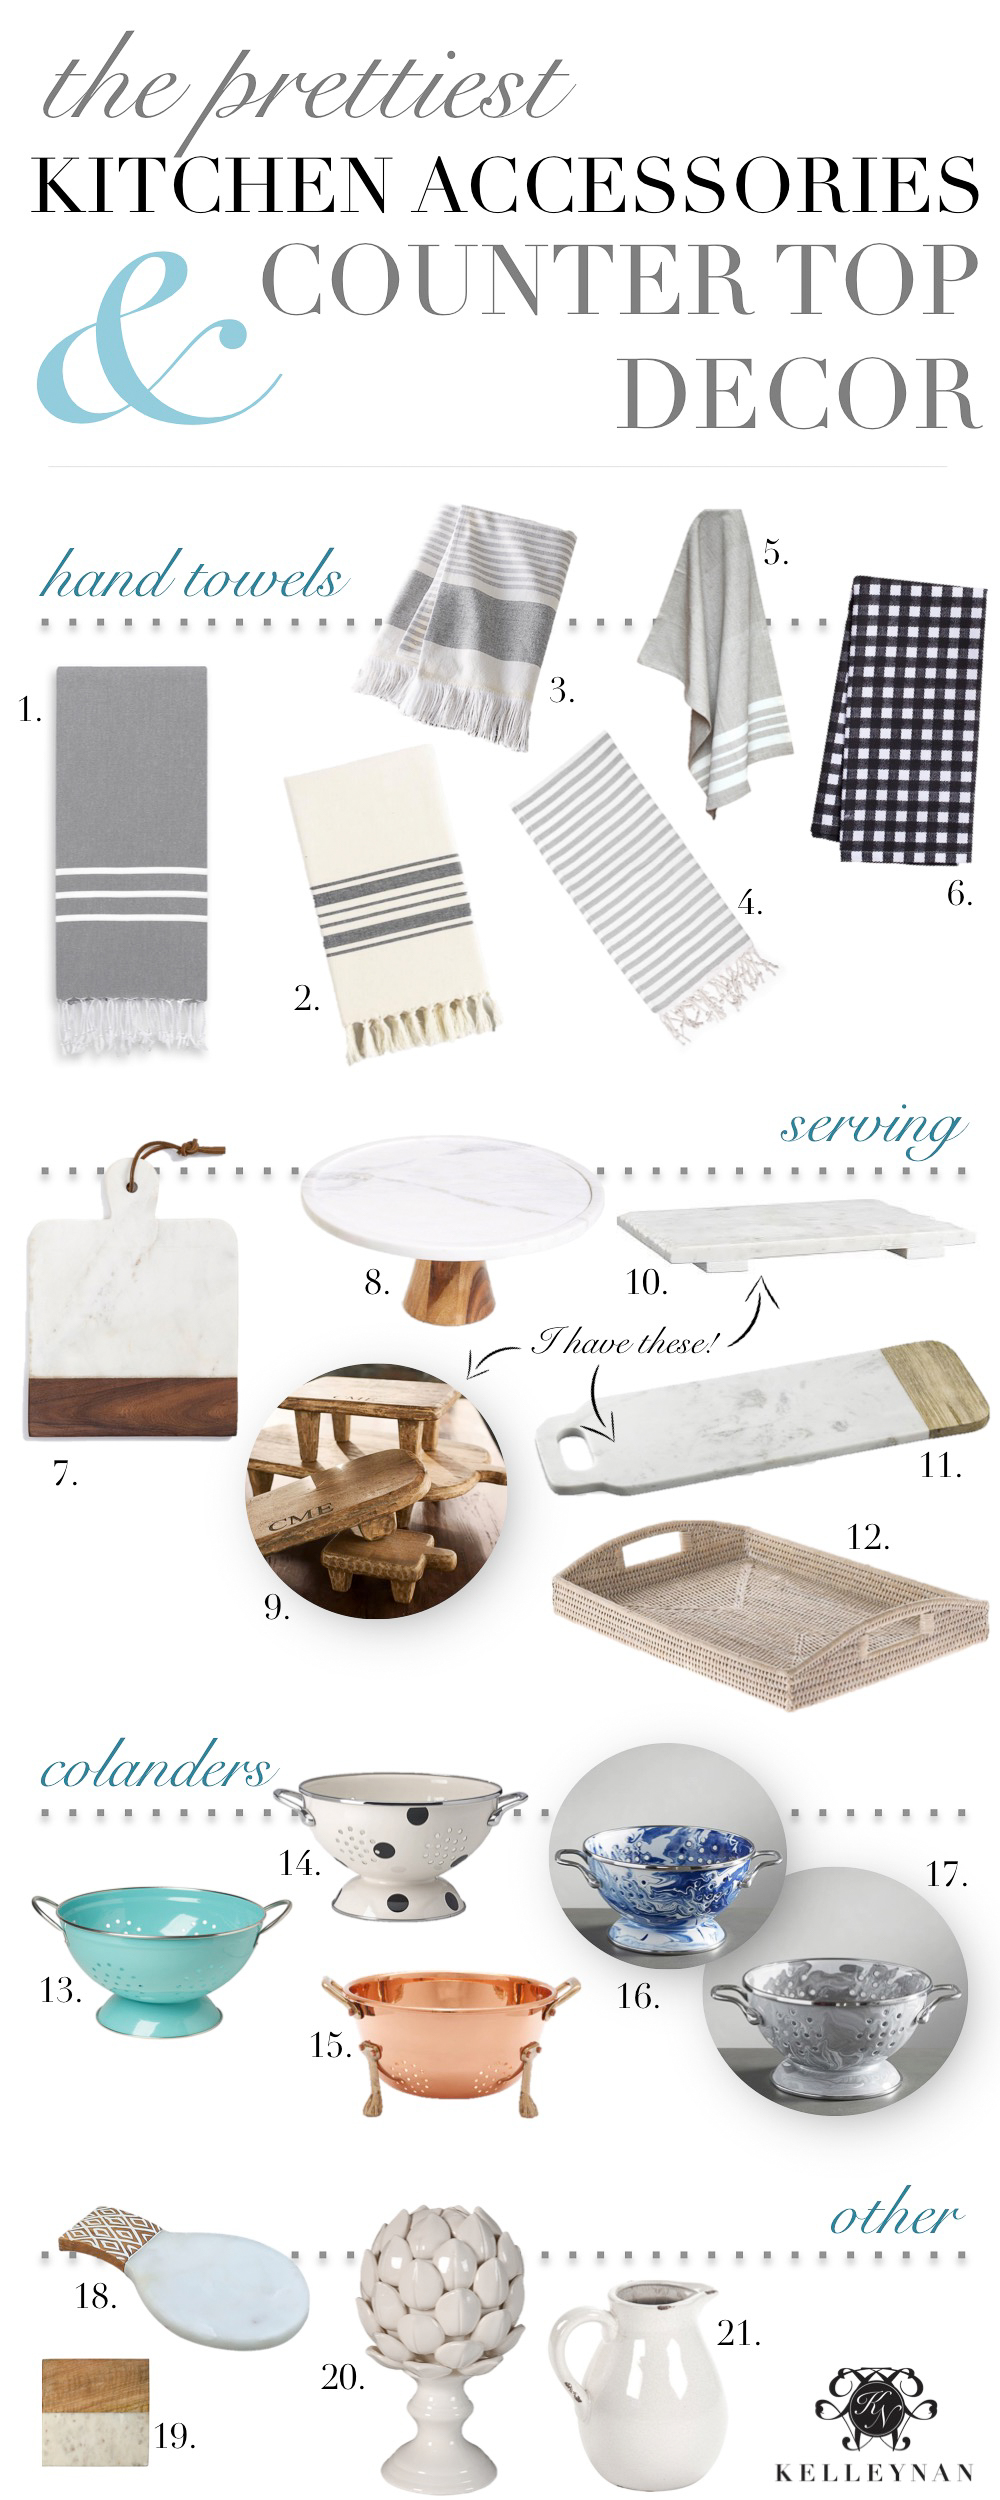 Pretty kitchen accessories and essentials for countertop styling and decorating